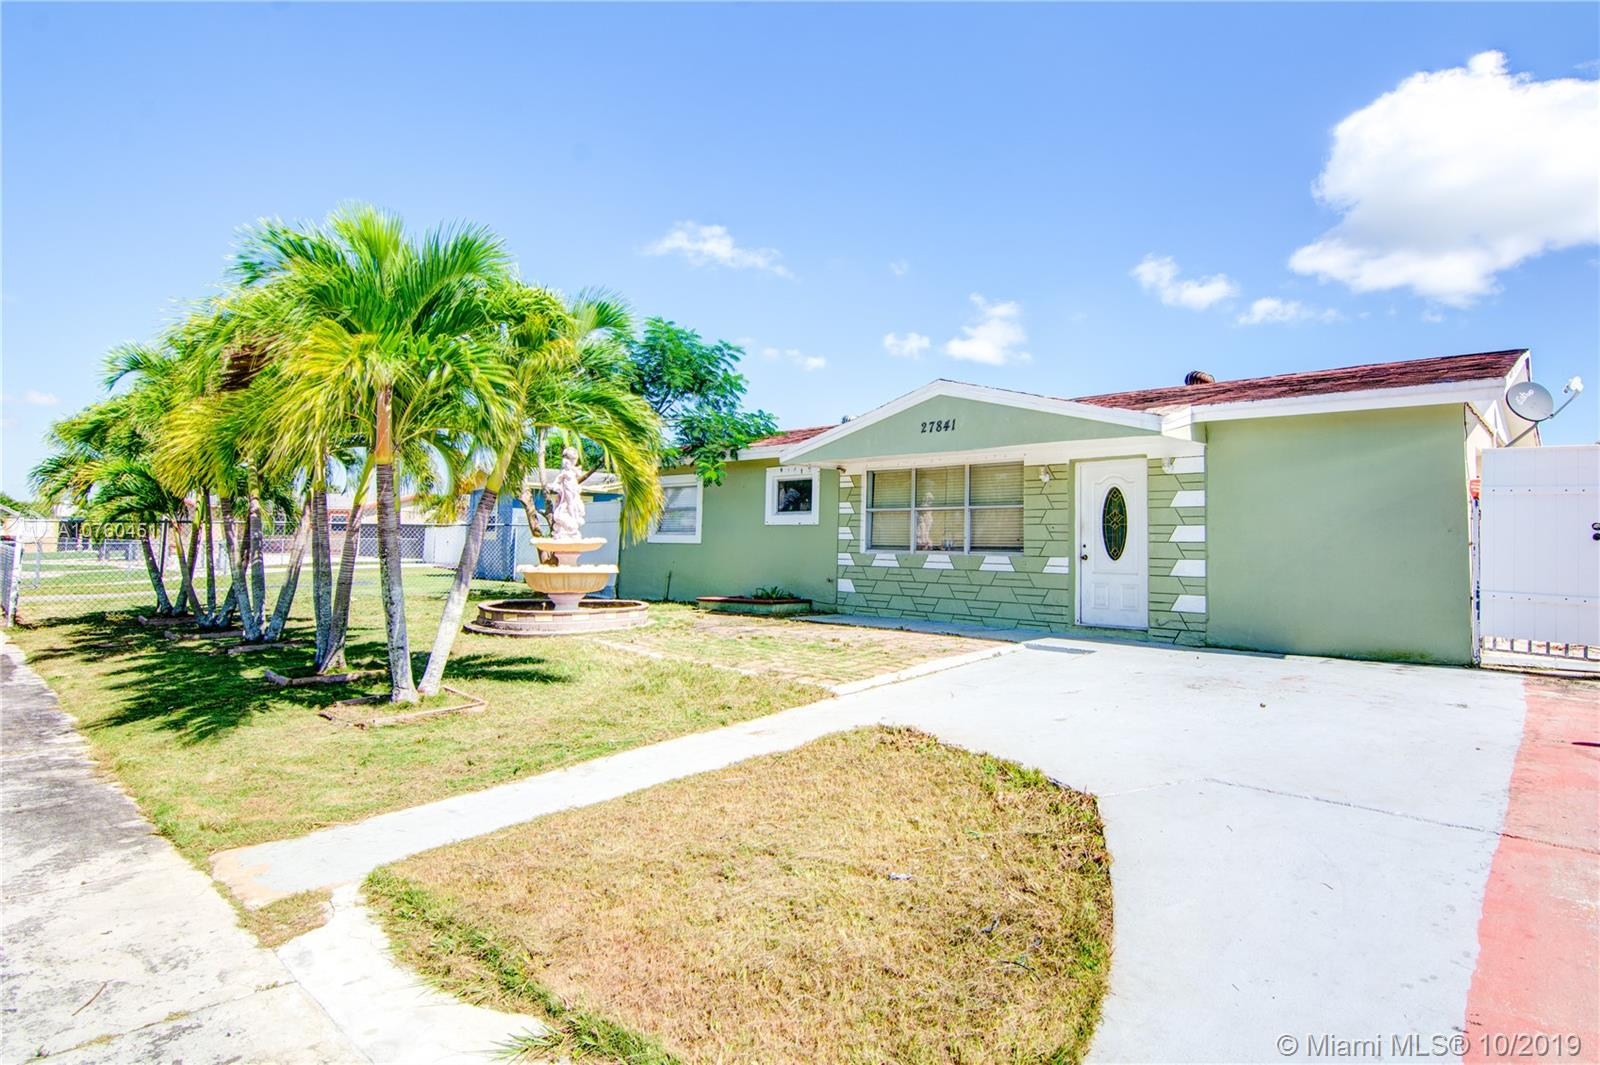 27841 SW 129th Ct, Homestead, FL 33032 - Homestead, FL real estate listing